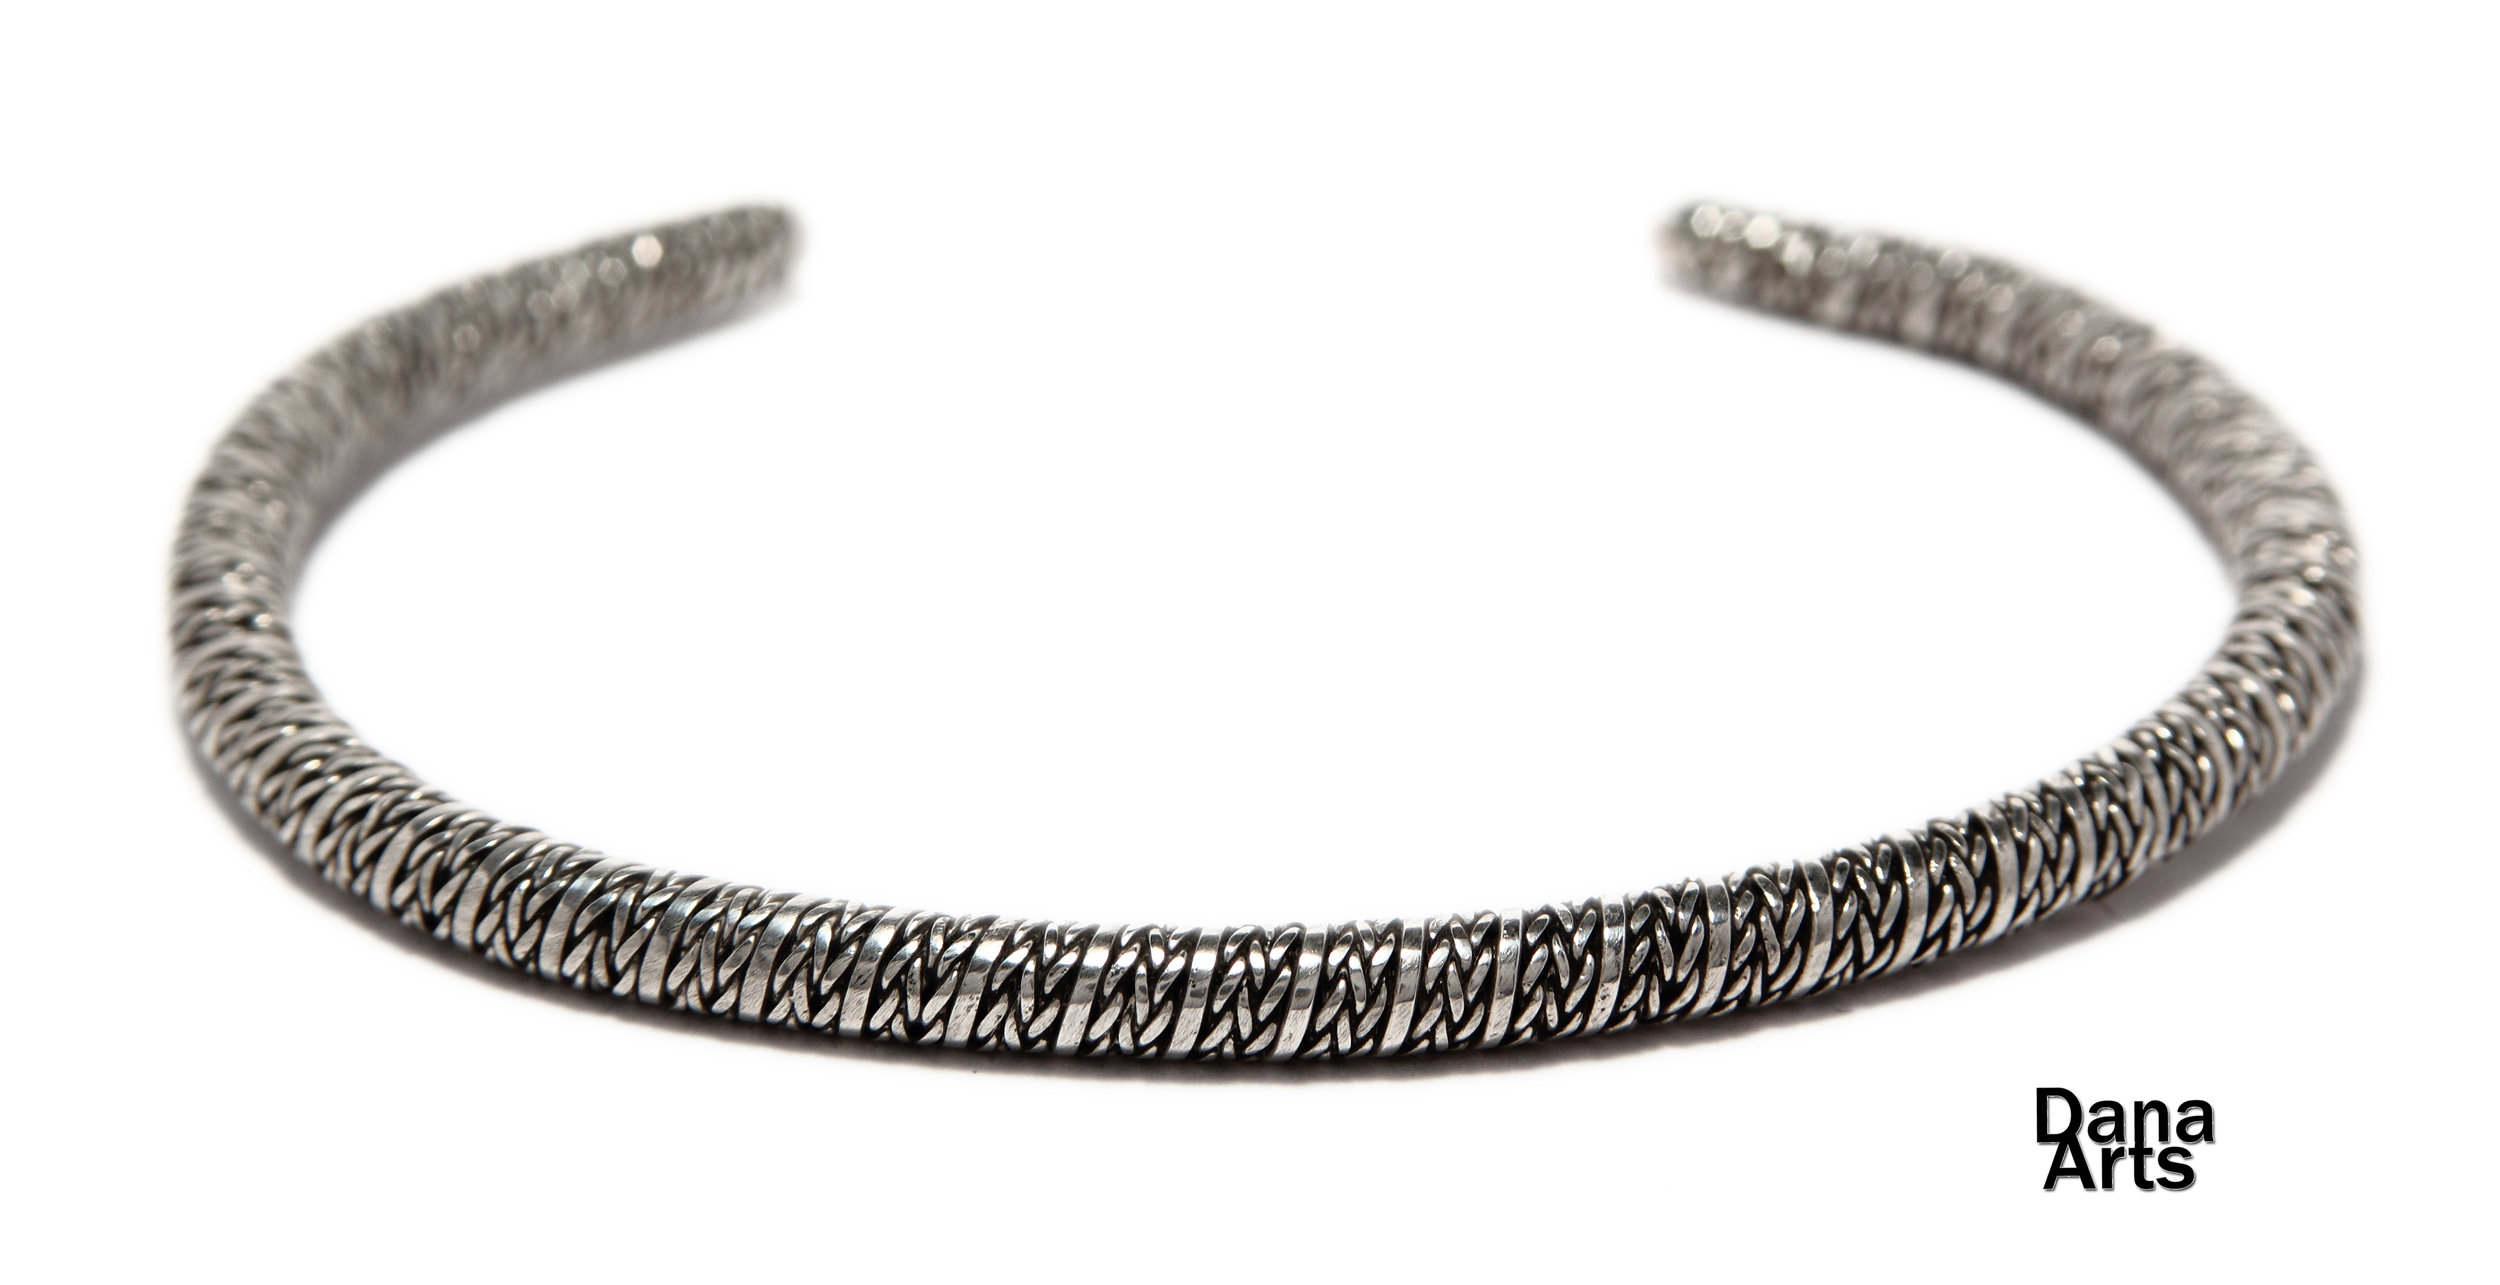 Handmade Solid Sterling Silver Bangle Bracelet